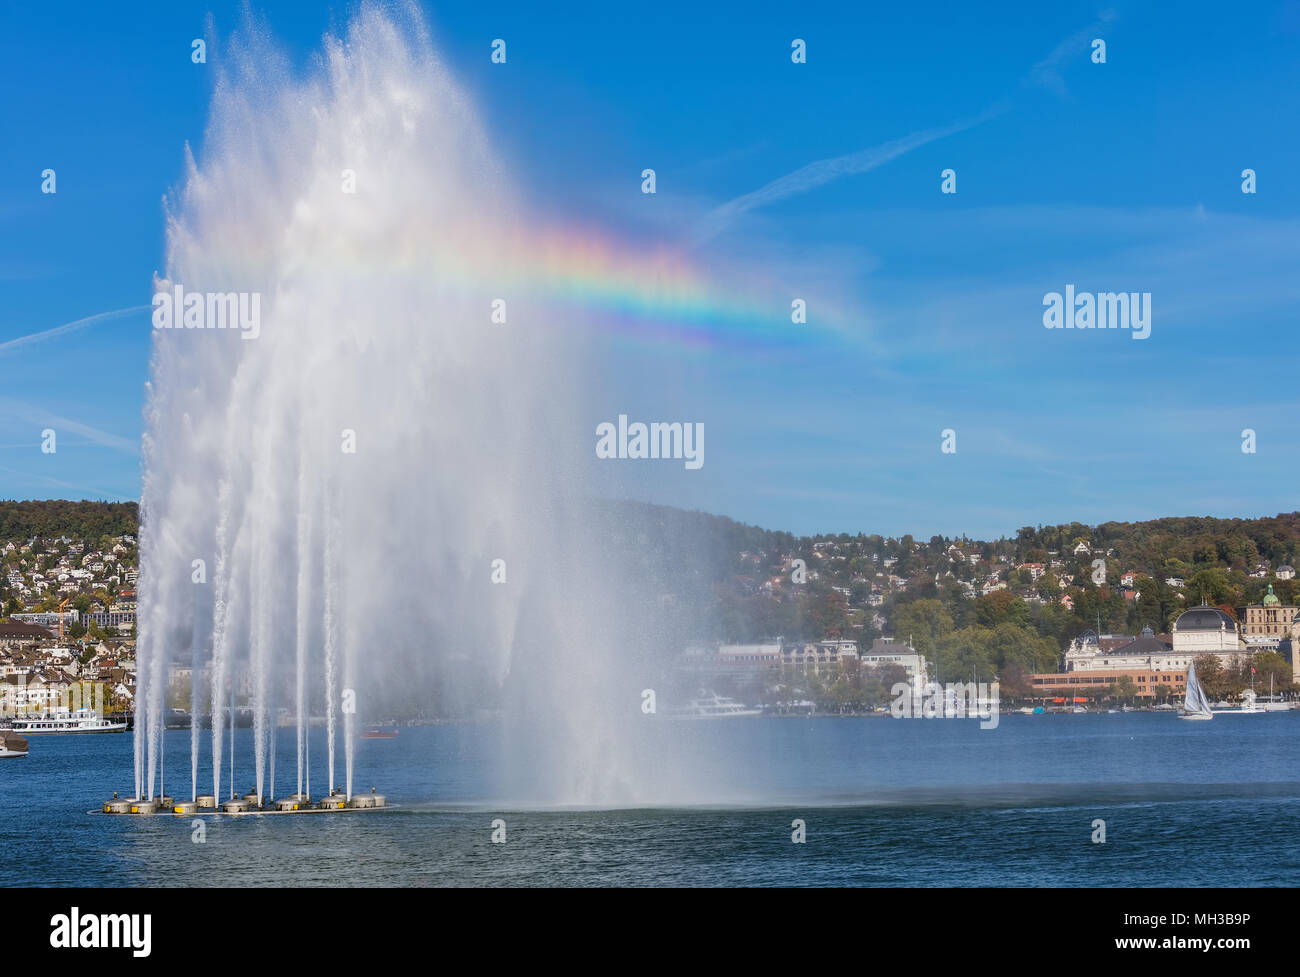 A fountain and boats on Lake Zurich in Switzerland, buildings of the city of Zurich in the background. The picture was taken at the beginning of Octob - Stock Image